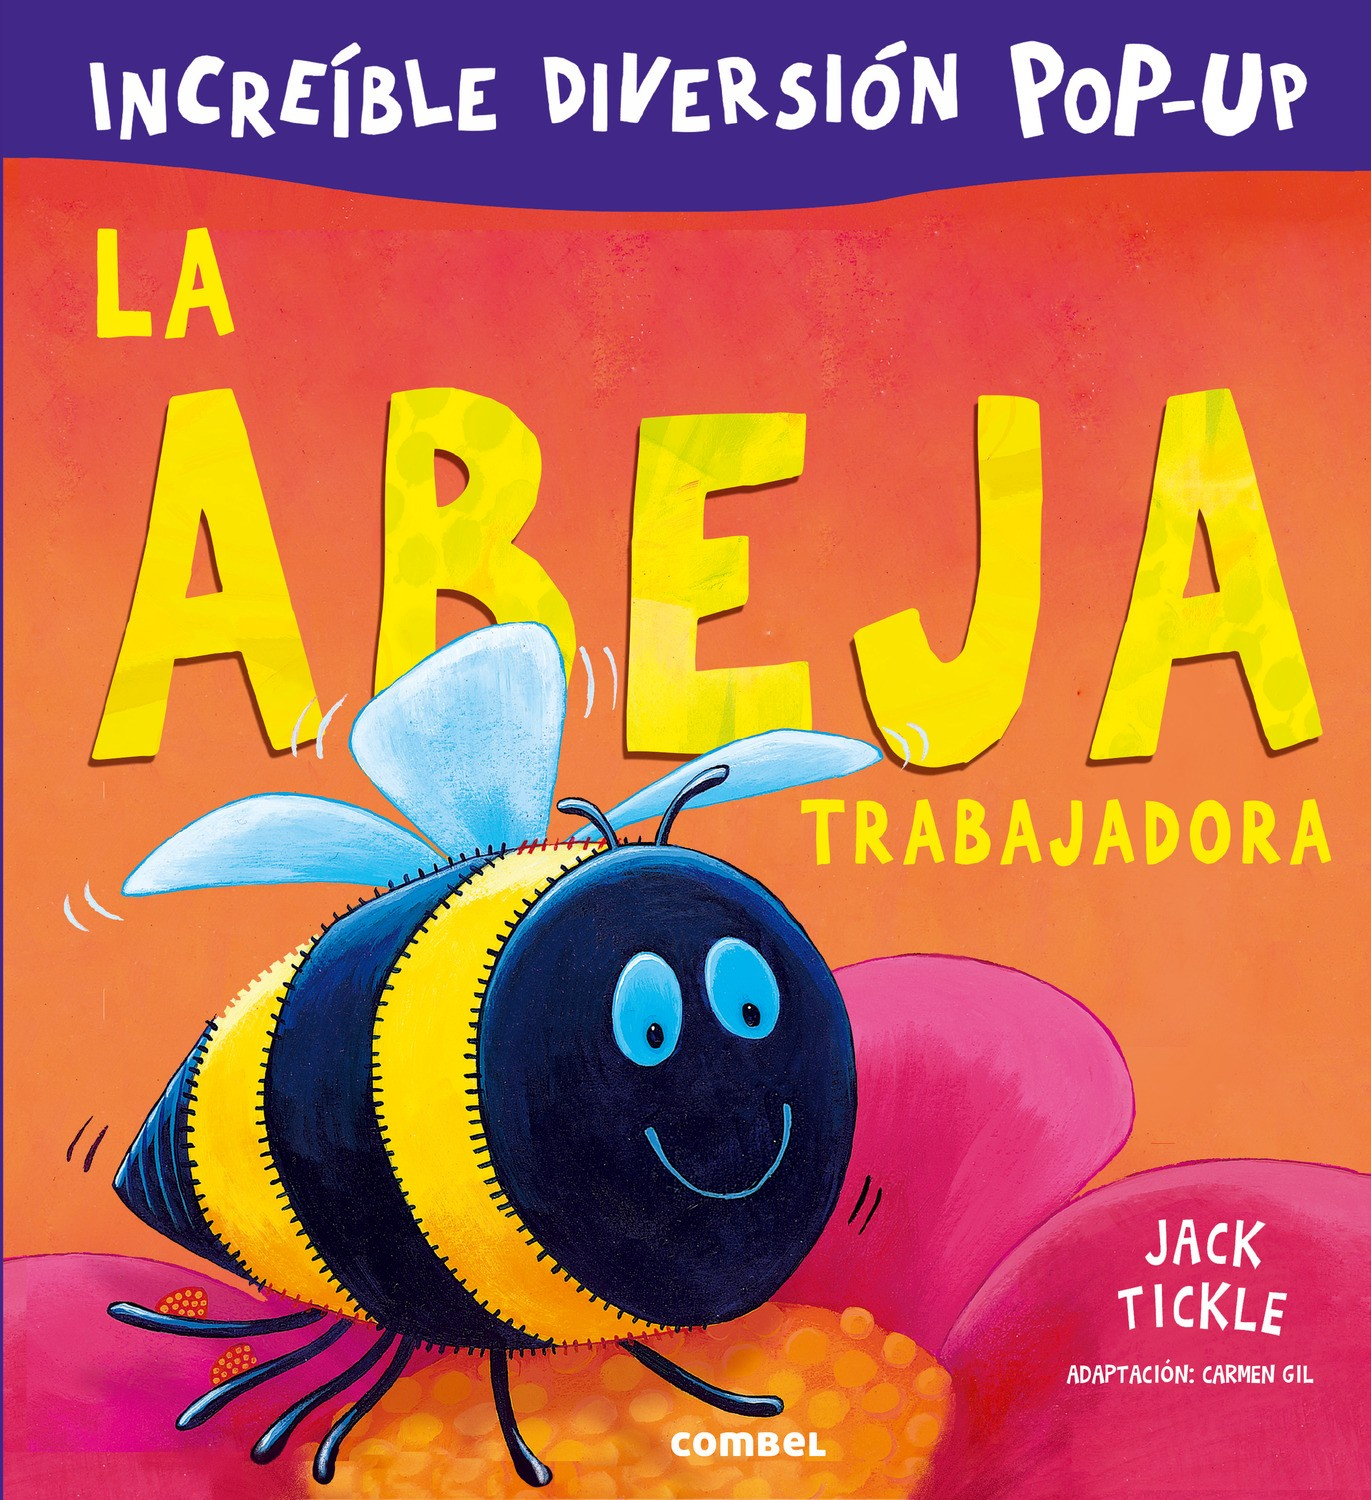 increible diversion pop-up...